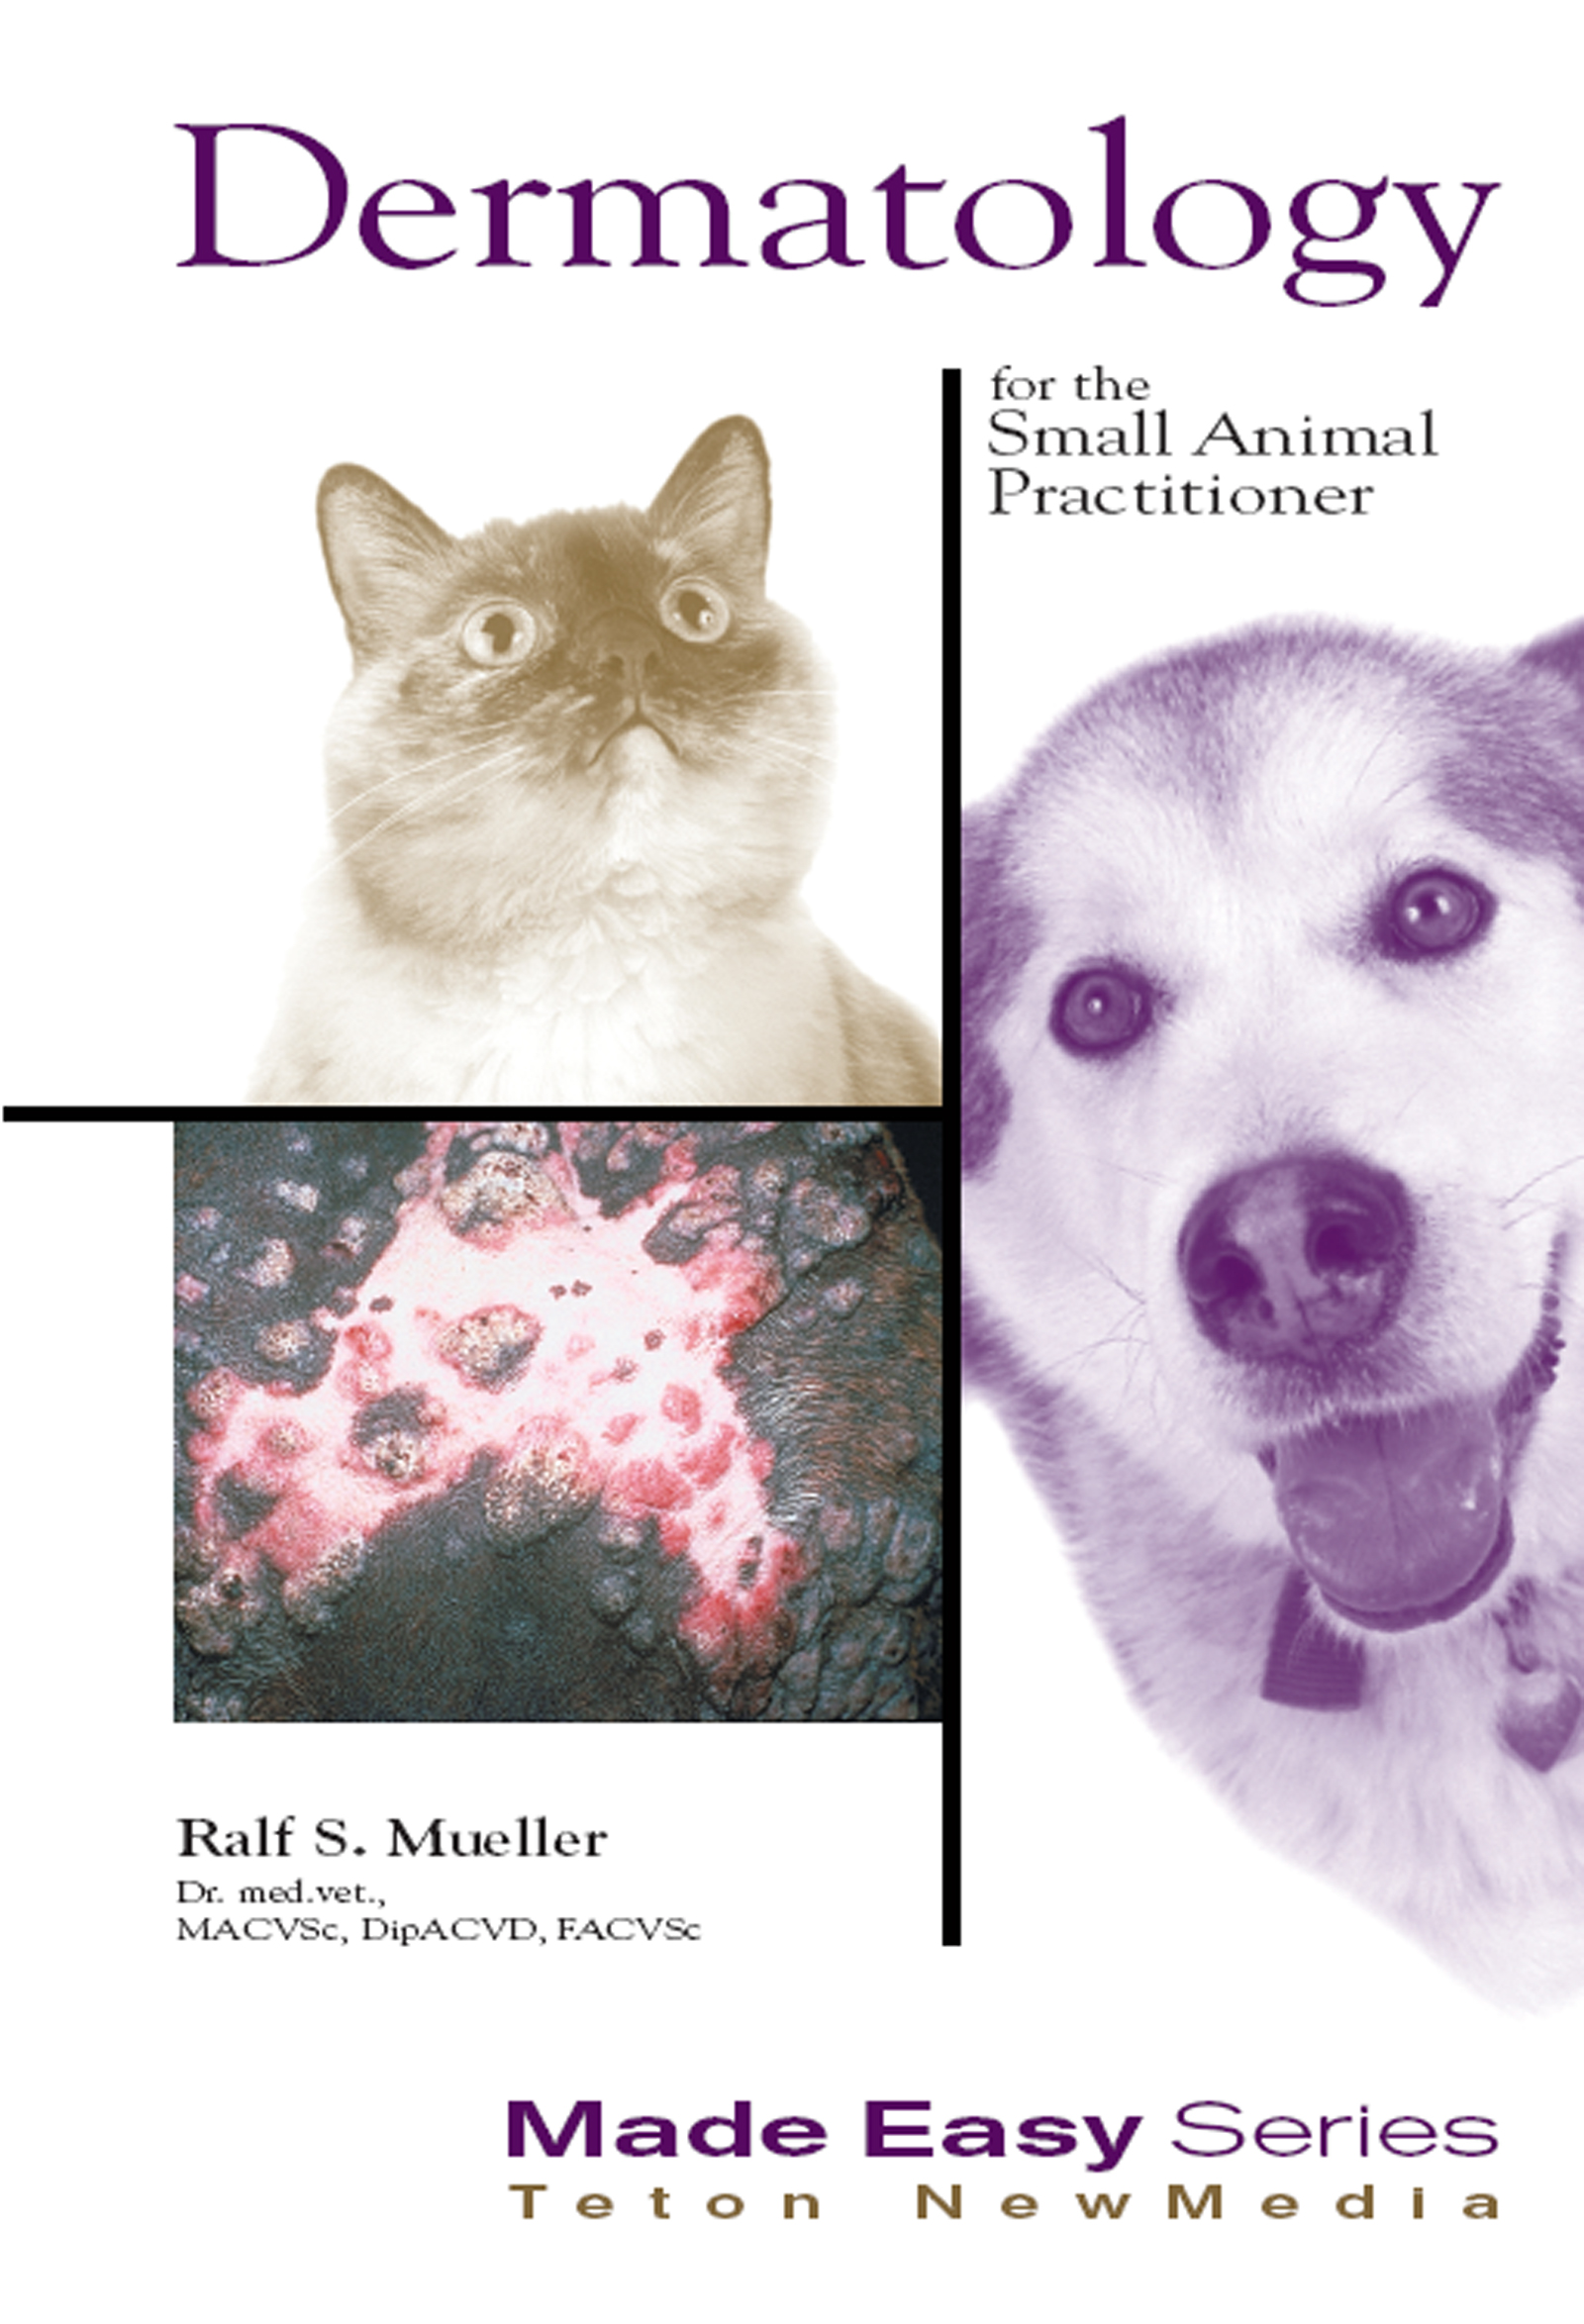 Dermatology for the Small Animal Practitioner (Book+CD)